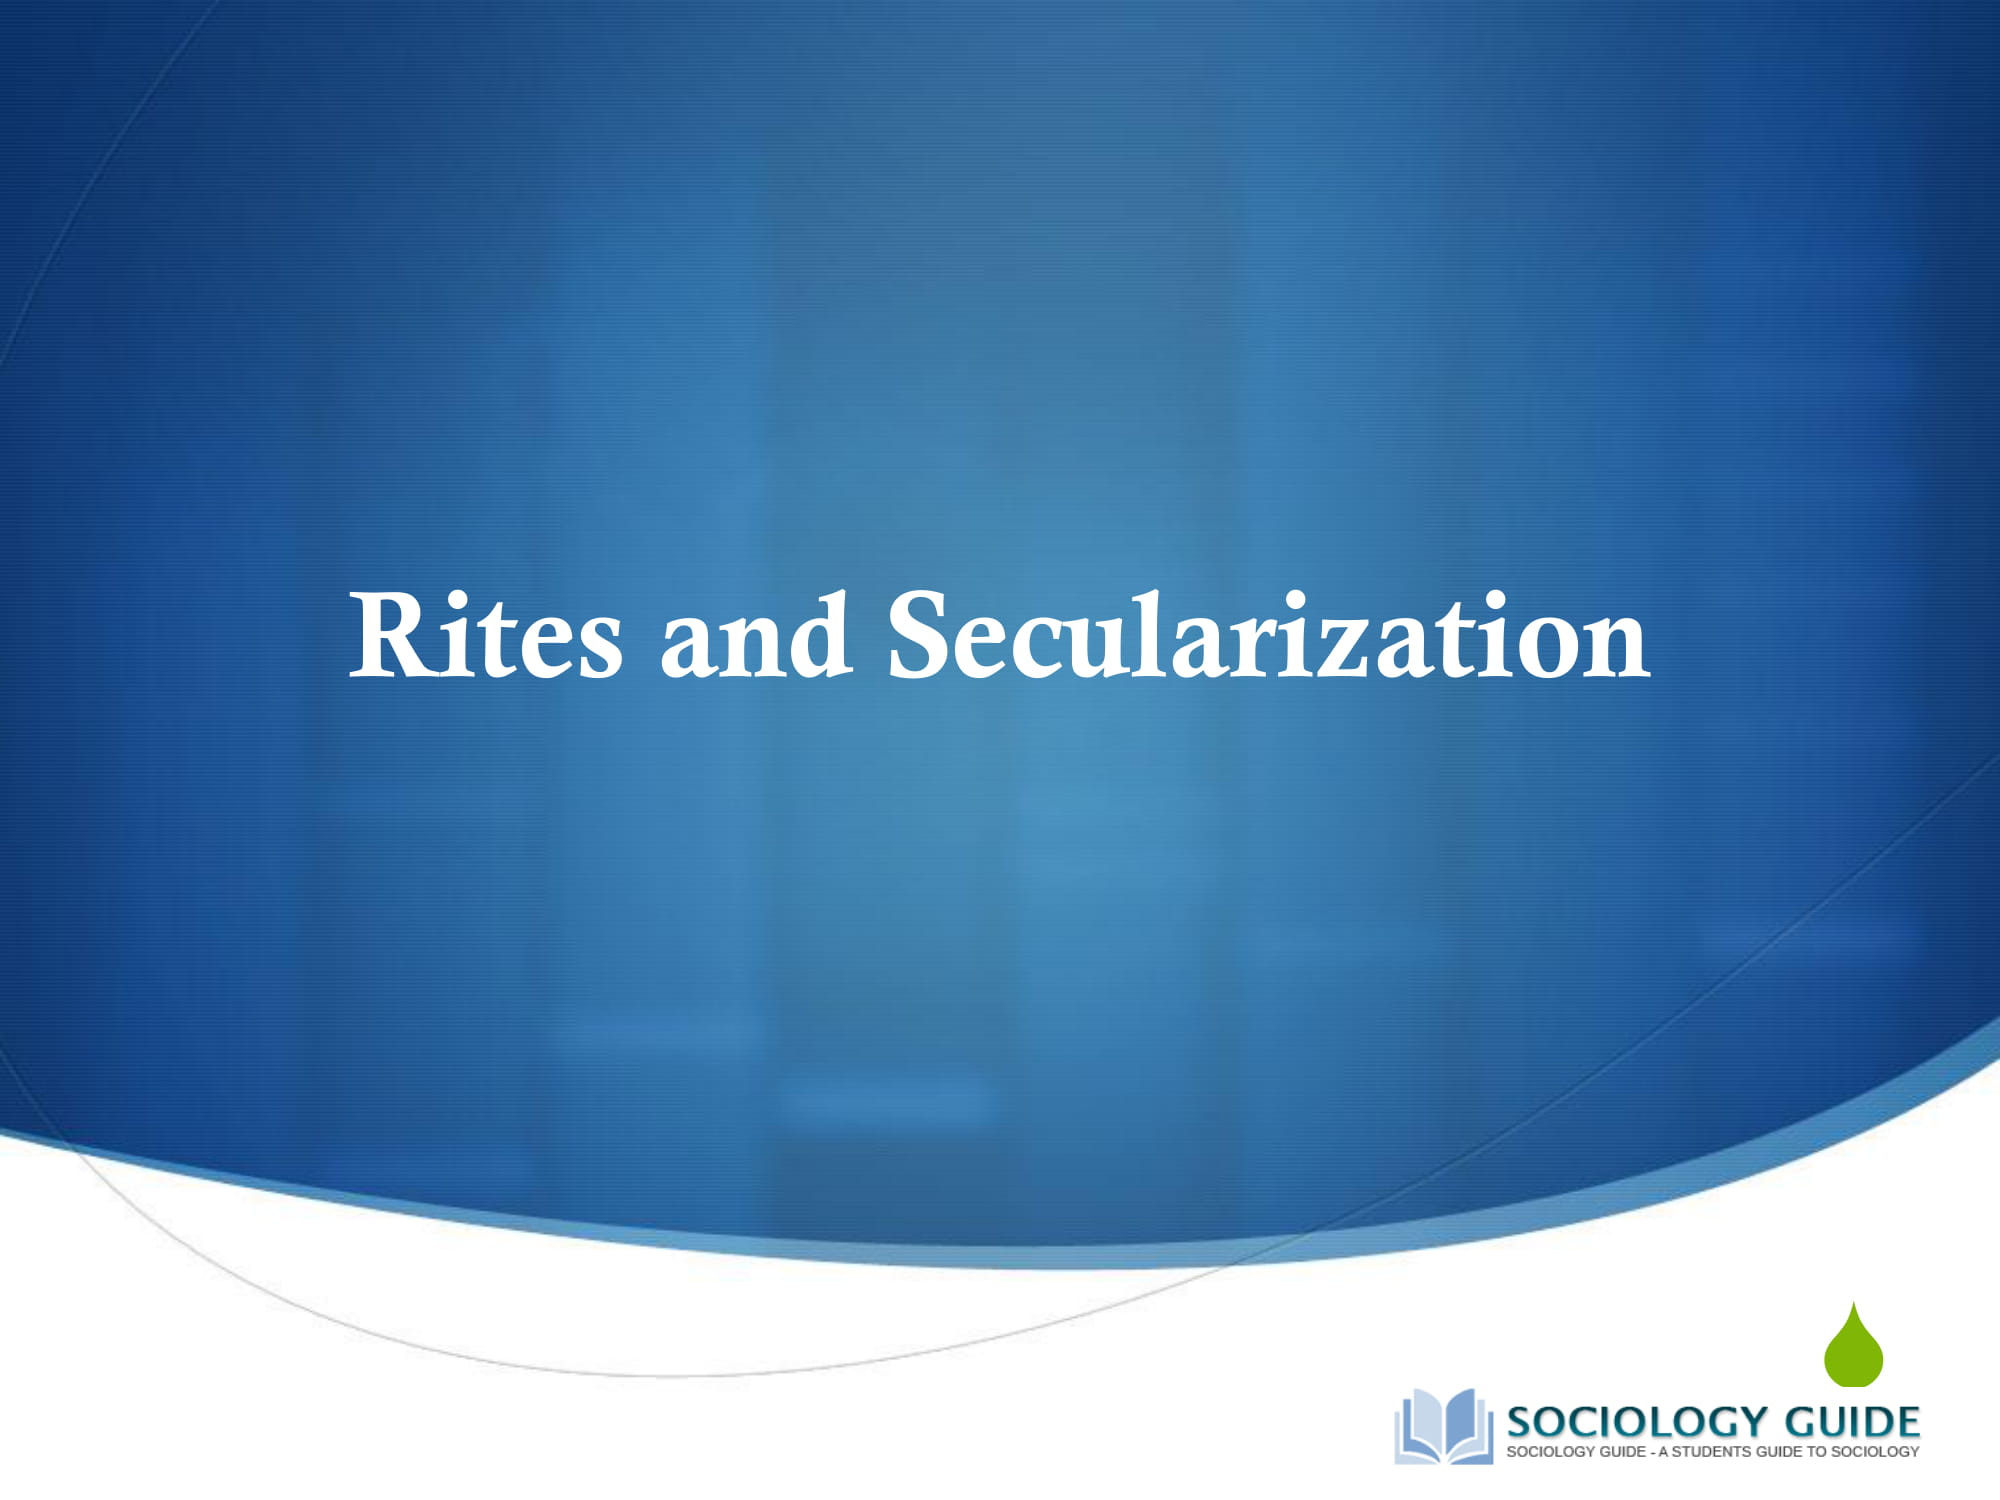 Rites and secularization